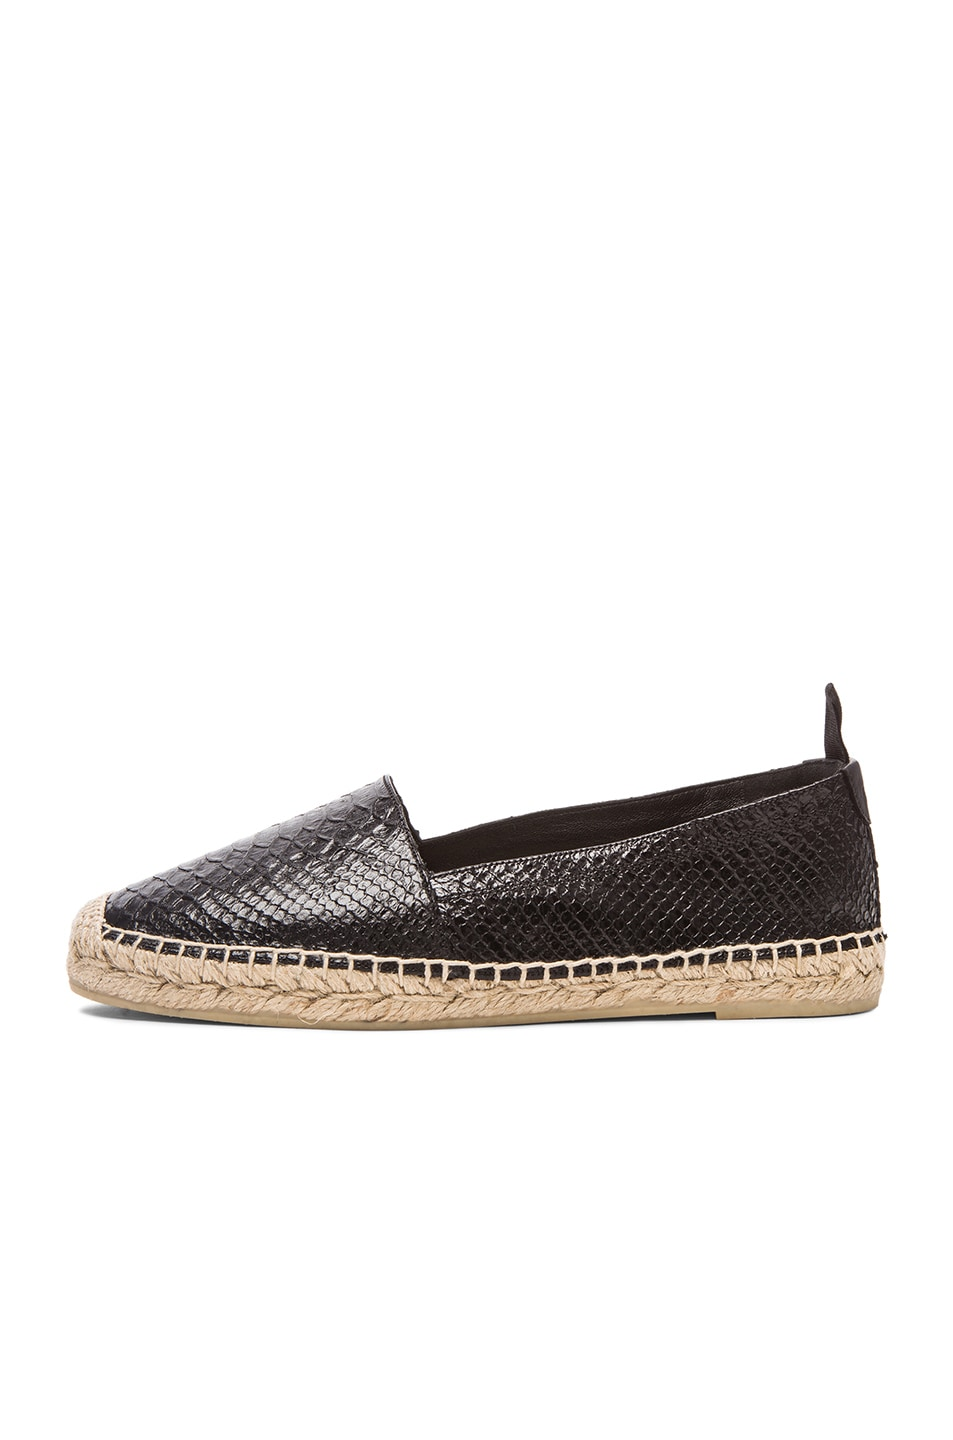 e094ea4ee Image 5 of Saint Laurent Python Embossed Leather Espadrilles in Black